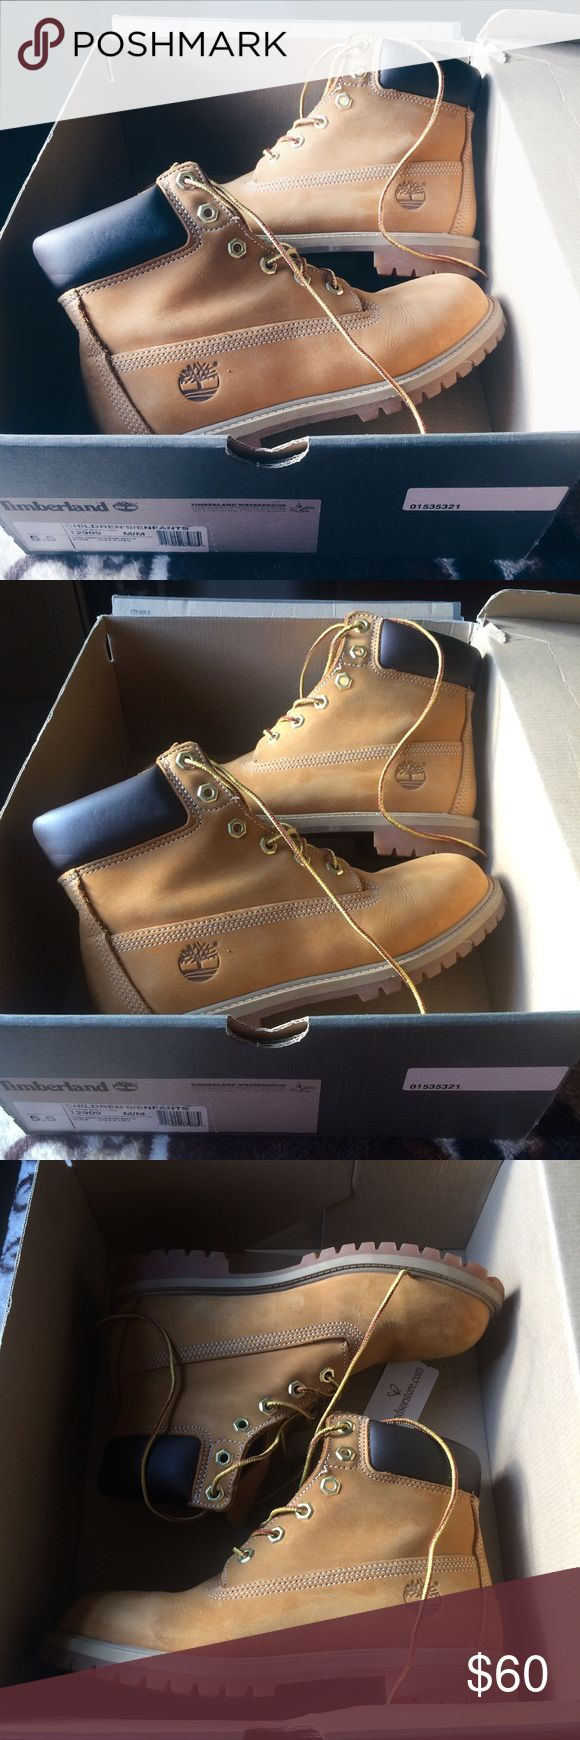 Timberland 6in Premium Waterproof Boots (wheat) FITS A WOMAN'S SIZE 7, 7.5, and 8!!! These boots are so cute and stylish! They have very slight and minor creasing in them from regular wear. As you can see, I've barely worn these and figured someone would want to get some use out of these cuties :) bought from the Timberland store and comes with the original box! Accepting offers and let me know if you have any questions! Timberland Shoes Winter & Rain Boots